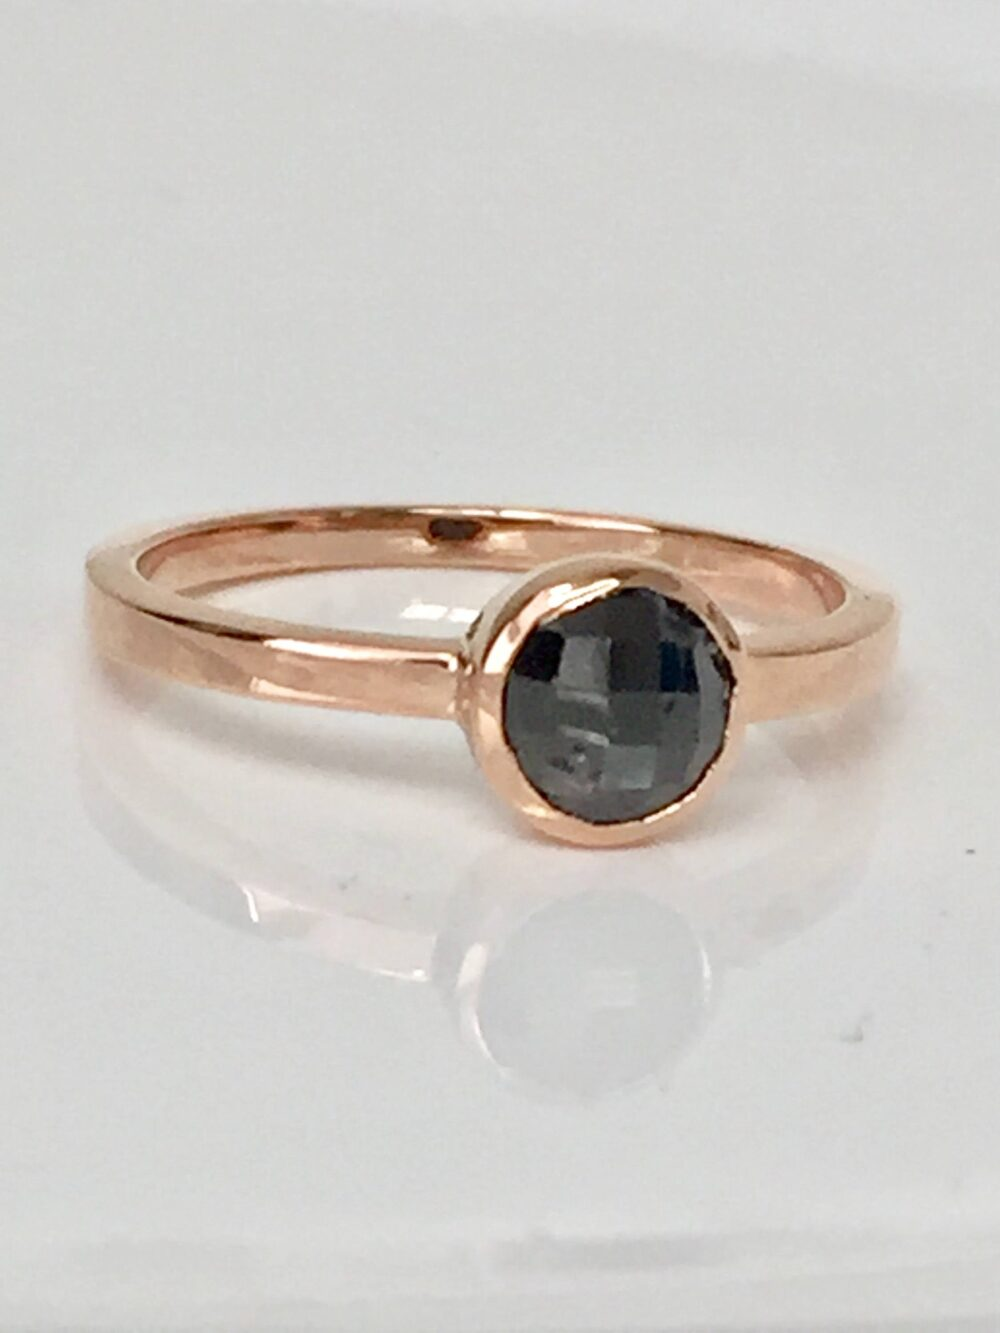 Delicate Diamond Ring, 14K Rose Gold Modern Engagement Black Solitaire, Bezel Petite Statement Delicate Cool Cute